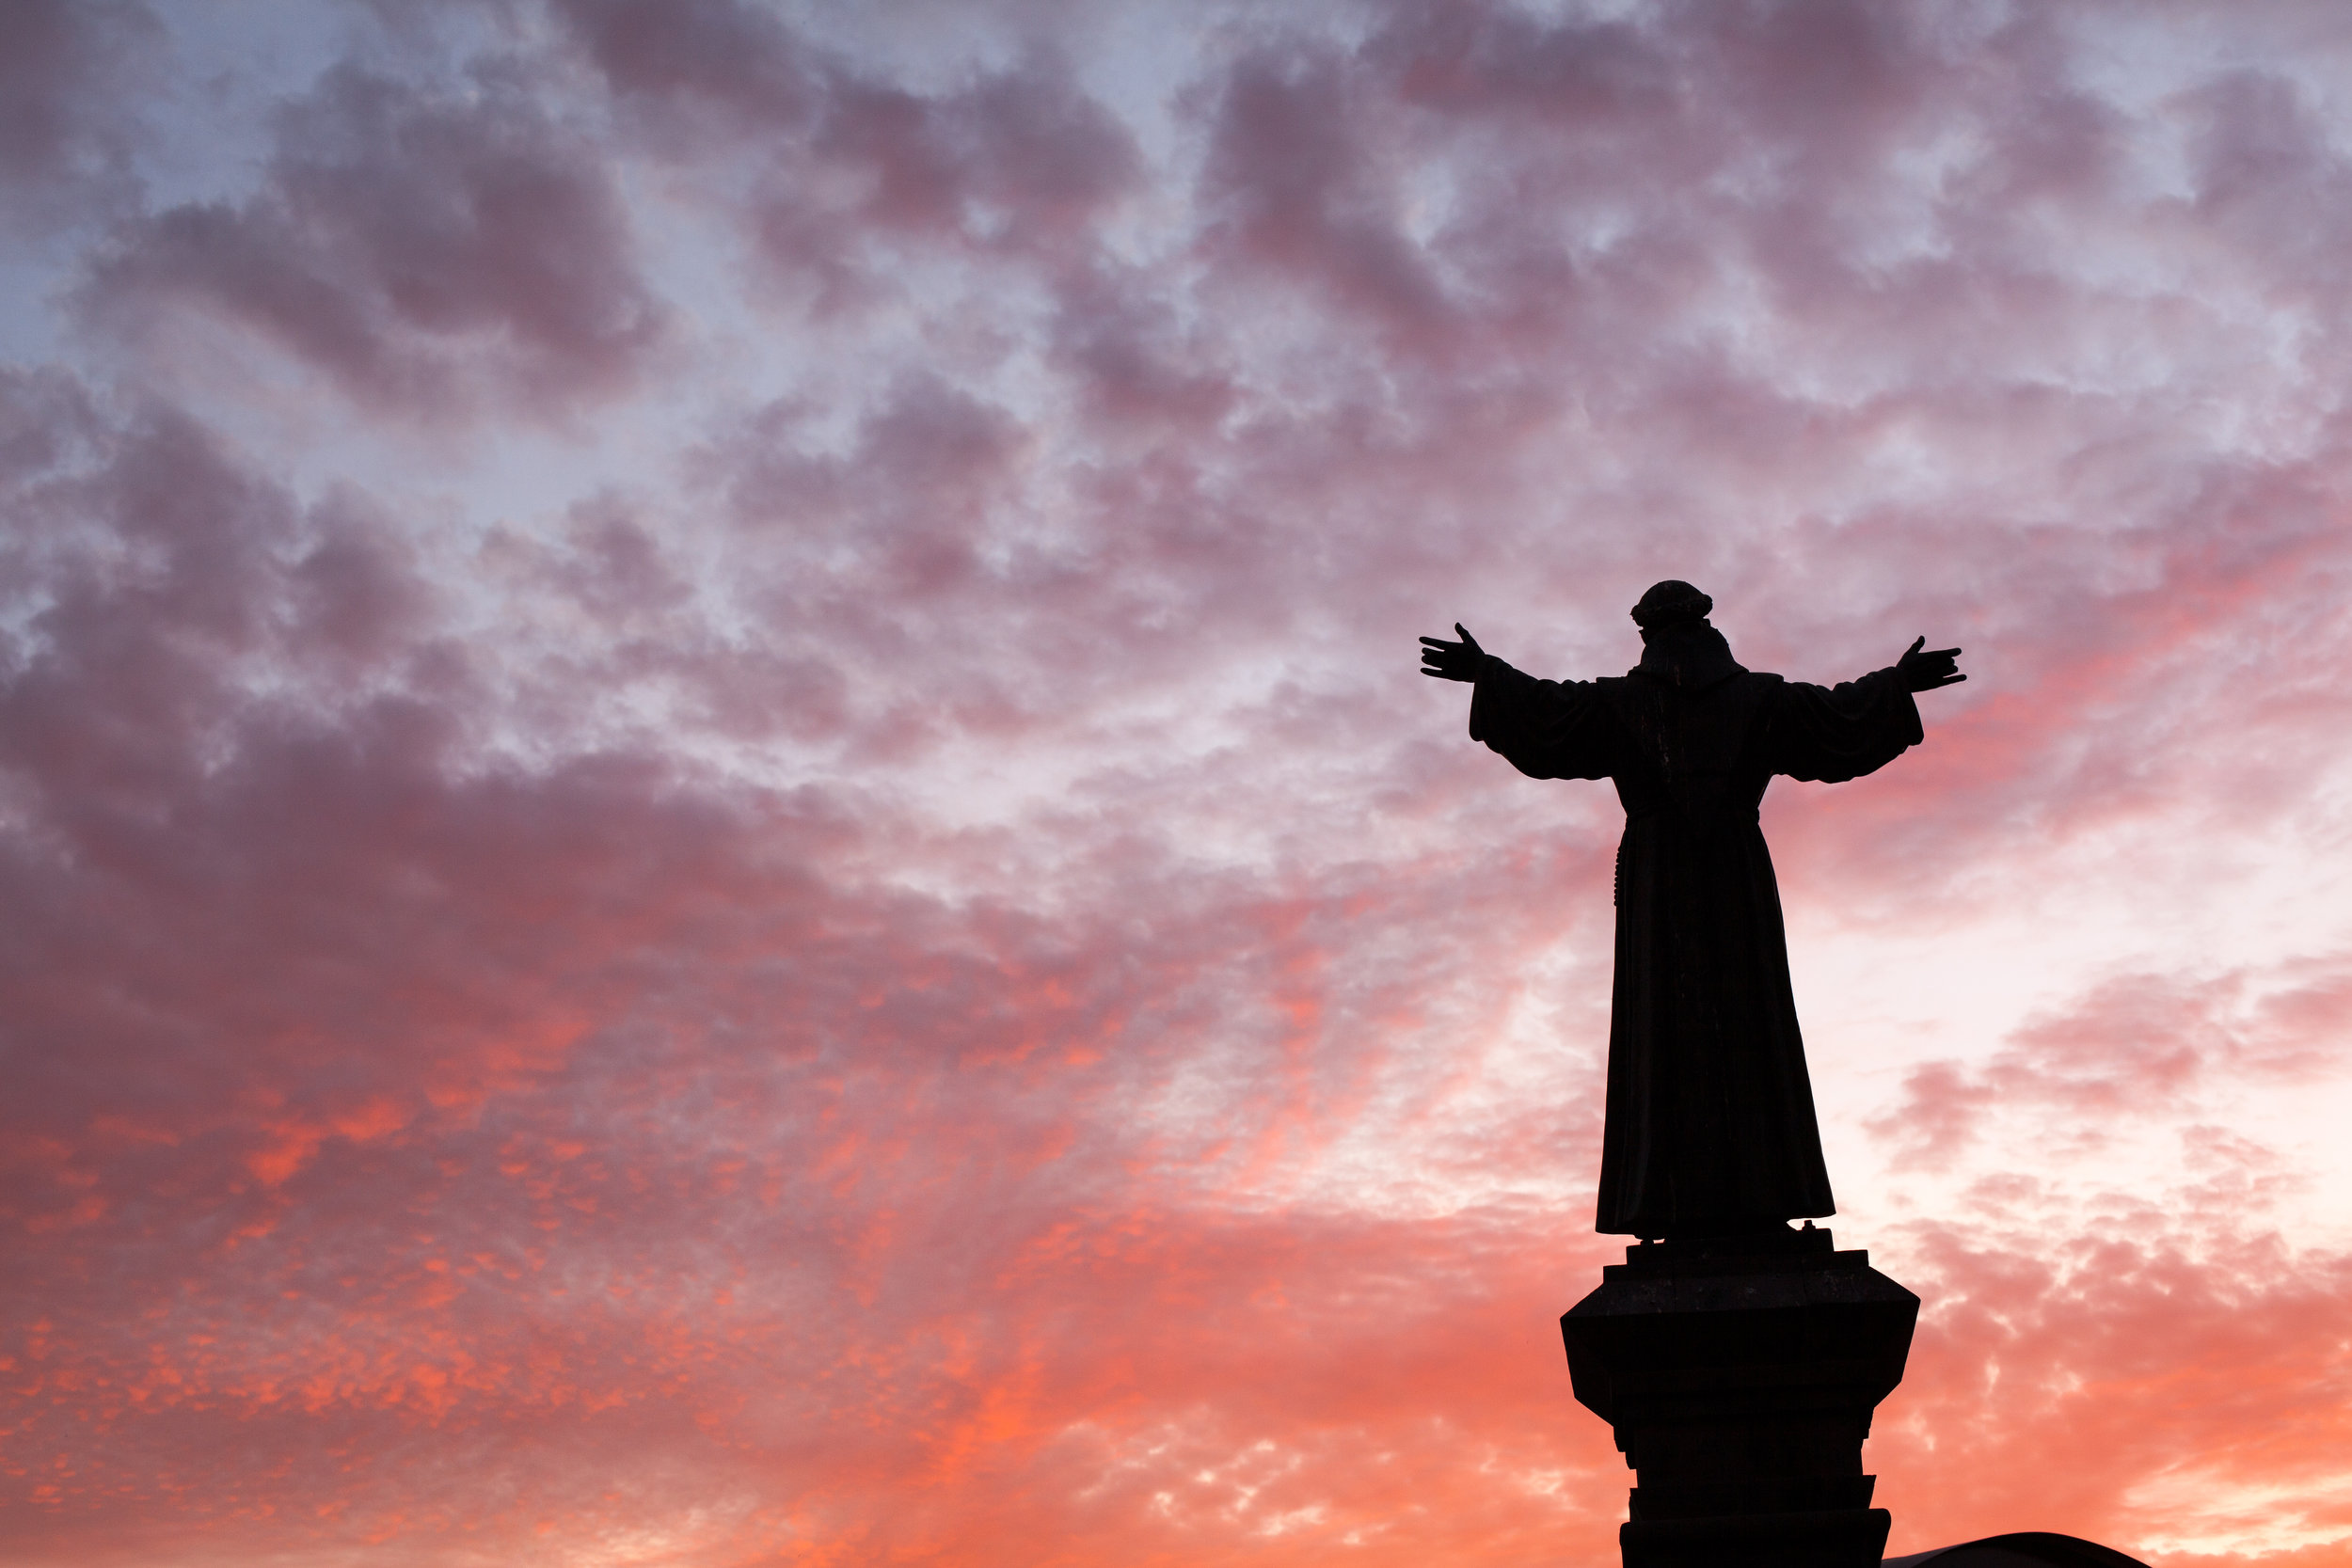 Negative space can add drama to an image such as this religious statue against a blood red sunset in Arequipa, Peru.